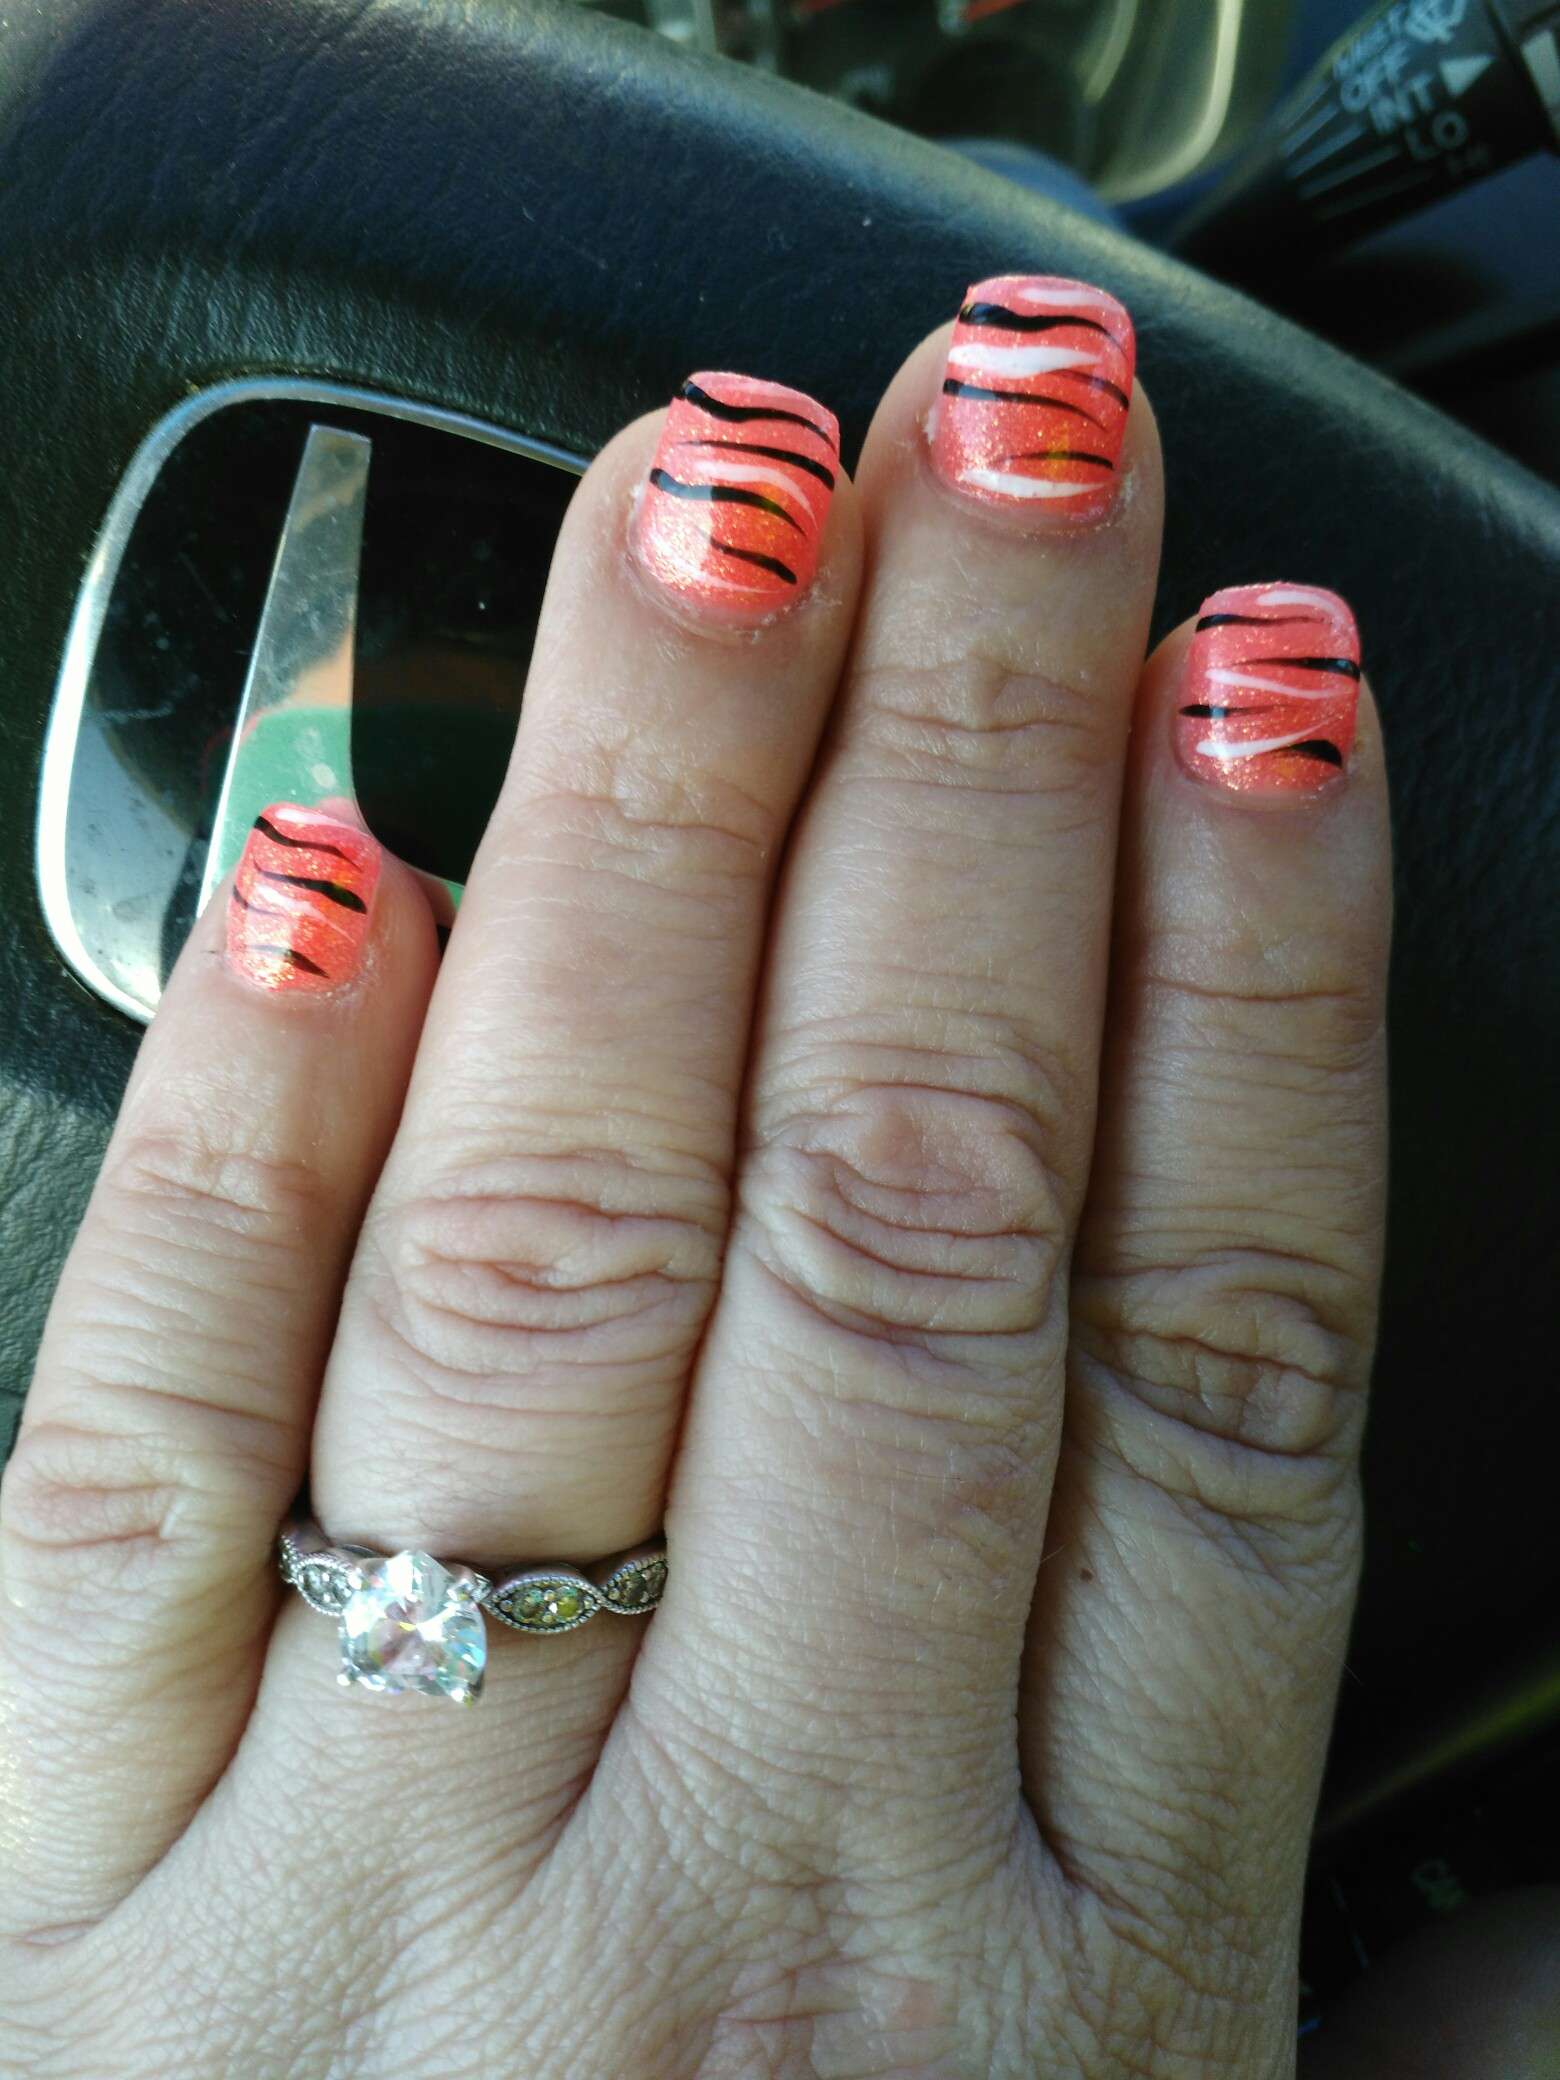 Exotic Nails 632 Corporate Dr, Houma, LA 70360 - YP.com